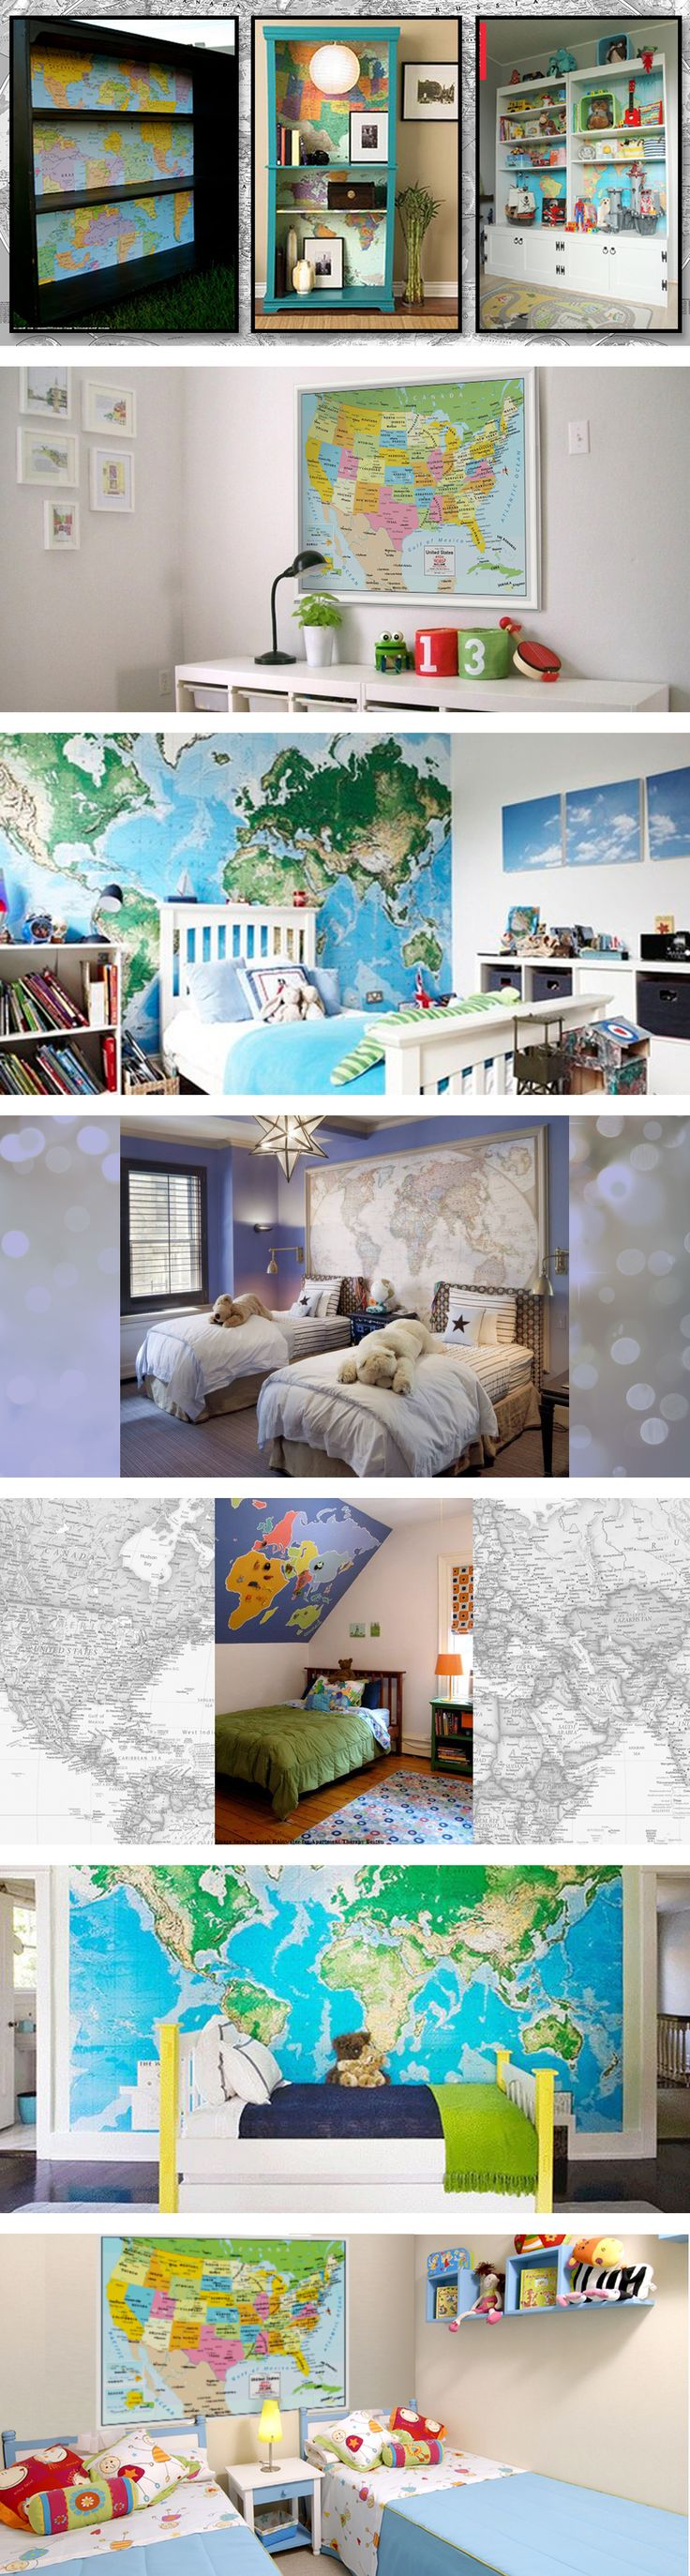 Best Decorating With Maps Images On Pinterest Wall Maps - Toys r us wall maps